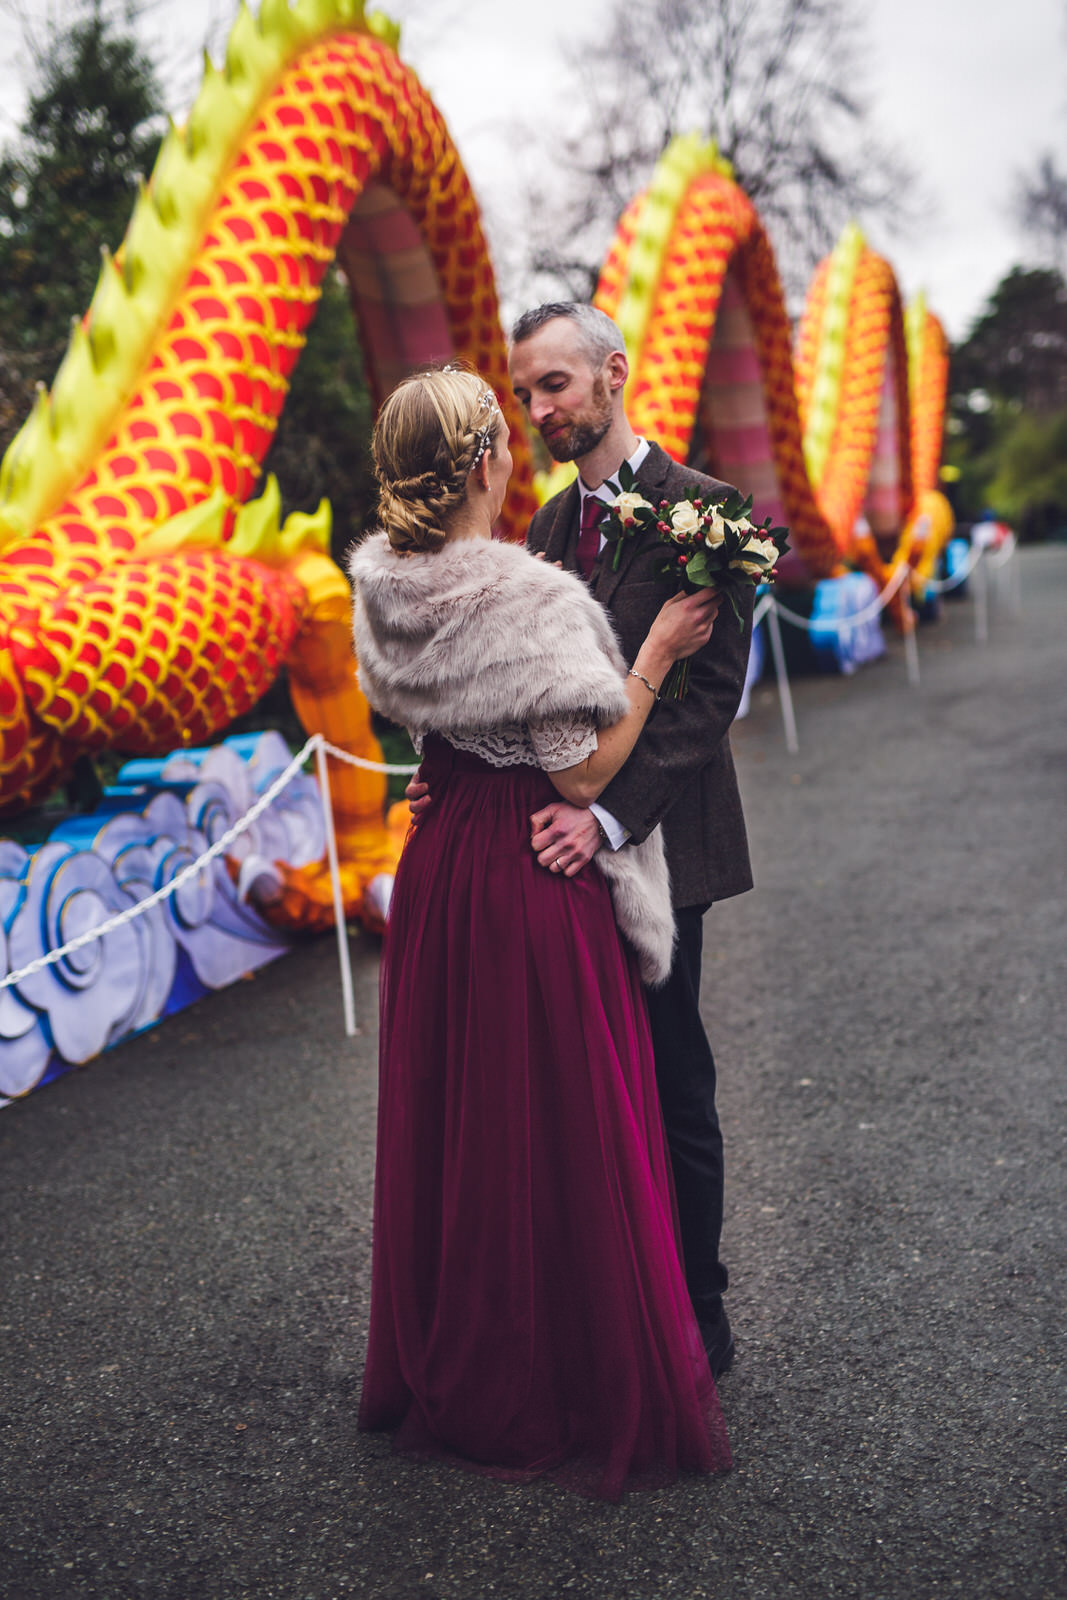 Roger_kenny-wedding-photographer-wicklow-dublin-zoo_073.jpg